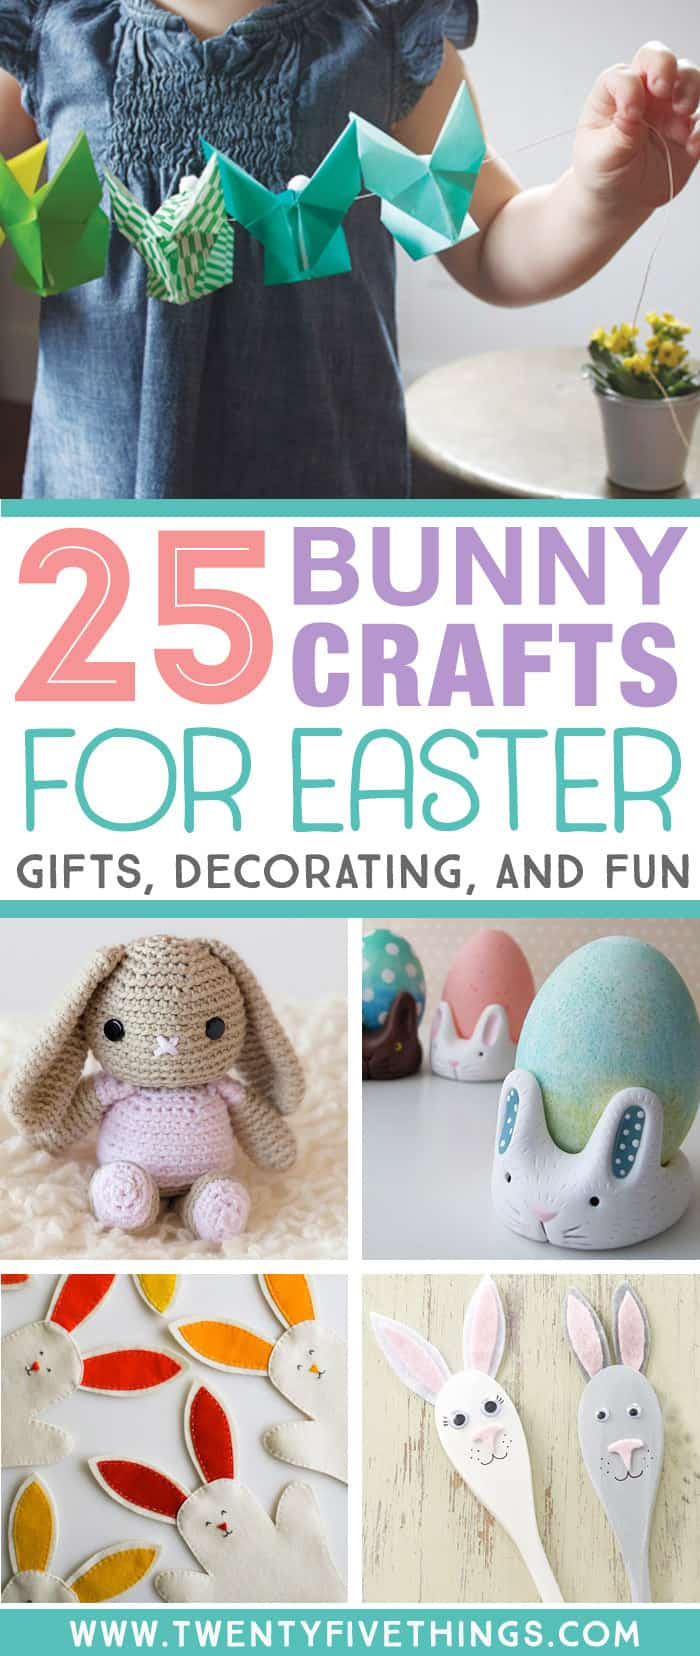 These Easter bunny crafts are so cute. I'm thinking of using some of these Easter ideas for handmade Easter gifts and simple Easter decorating. Click through to see the bunny puppets, clay bunny tutorials, knitting and crochet bunny patterns and more bunny crafts.